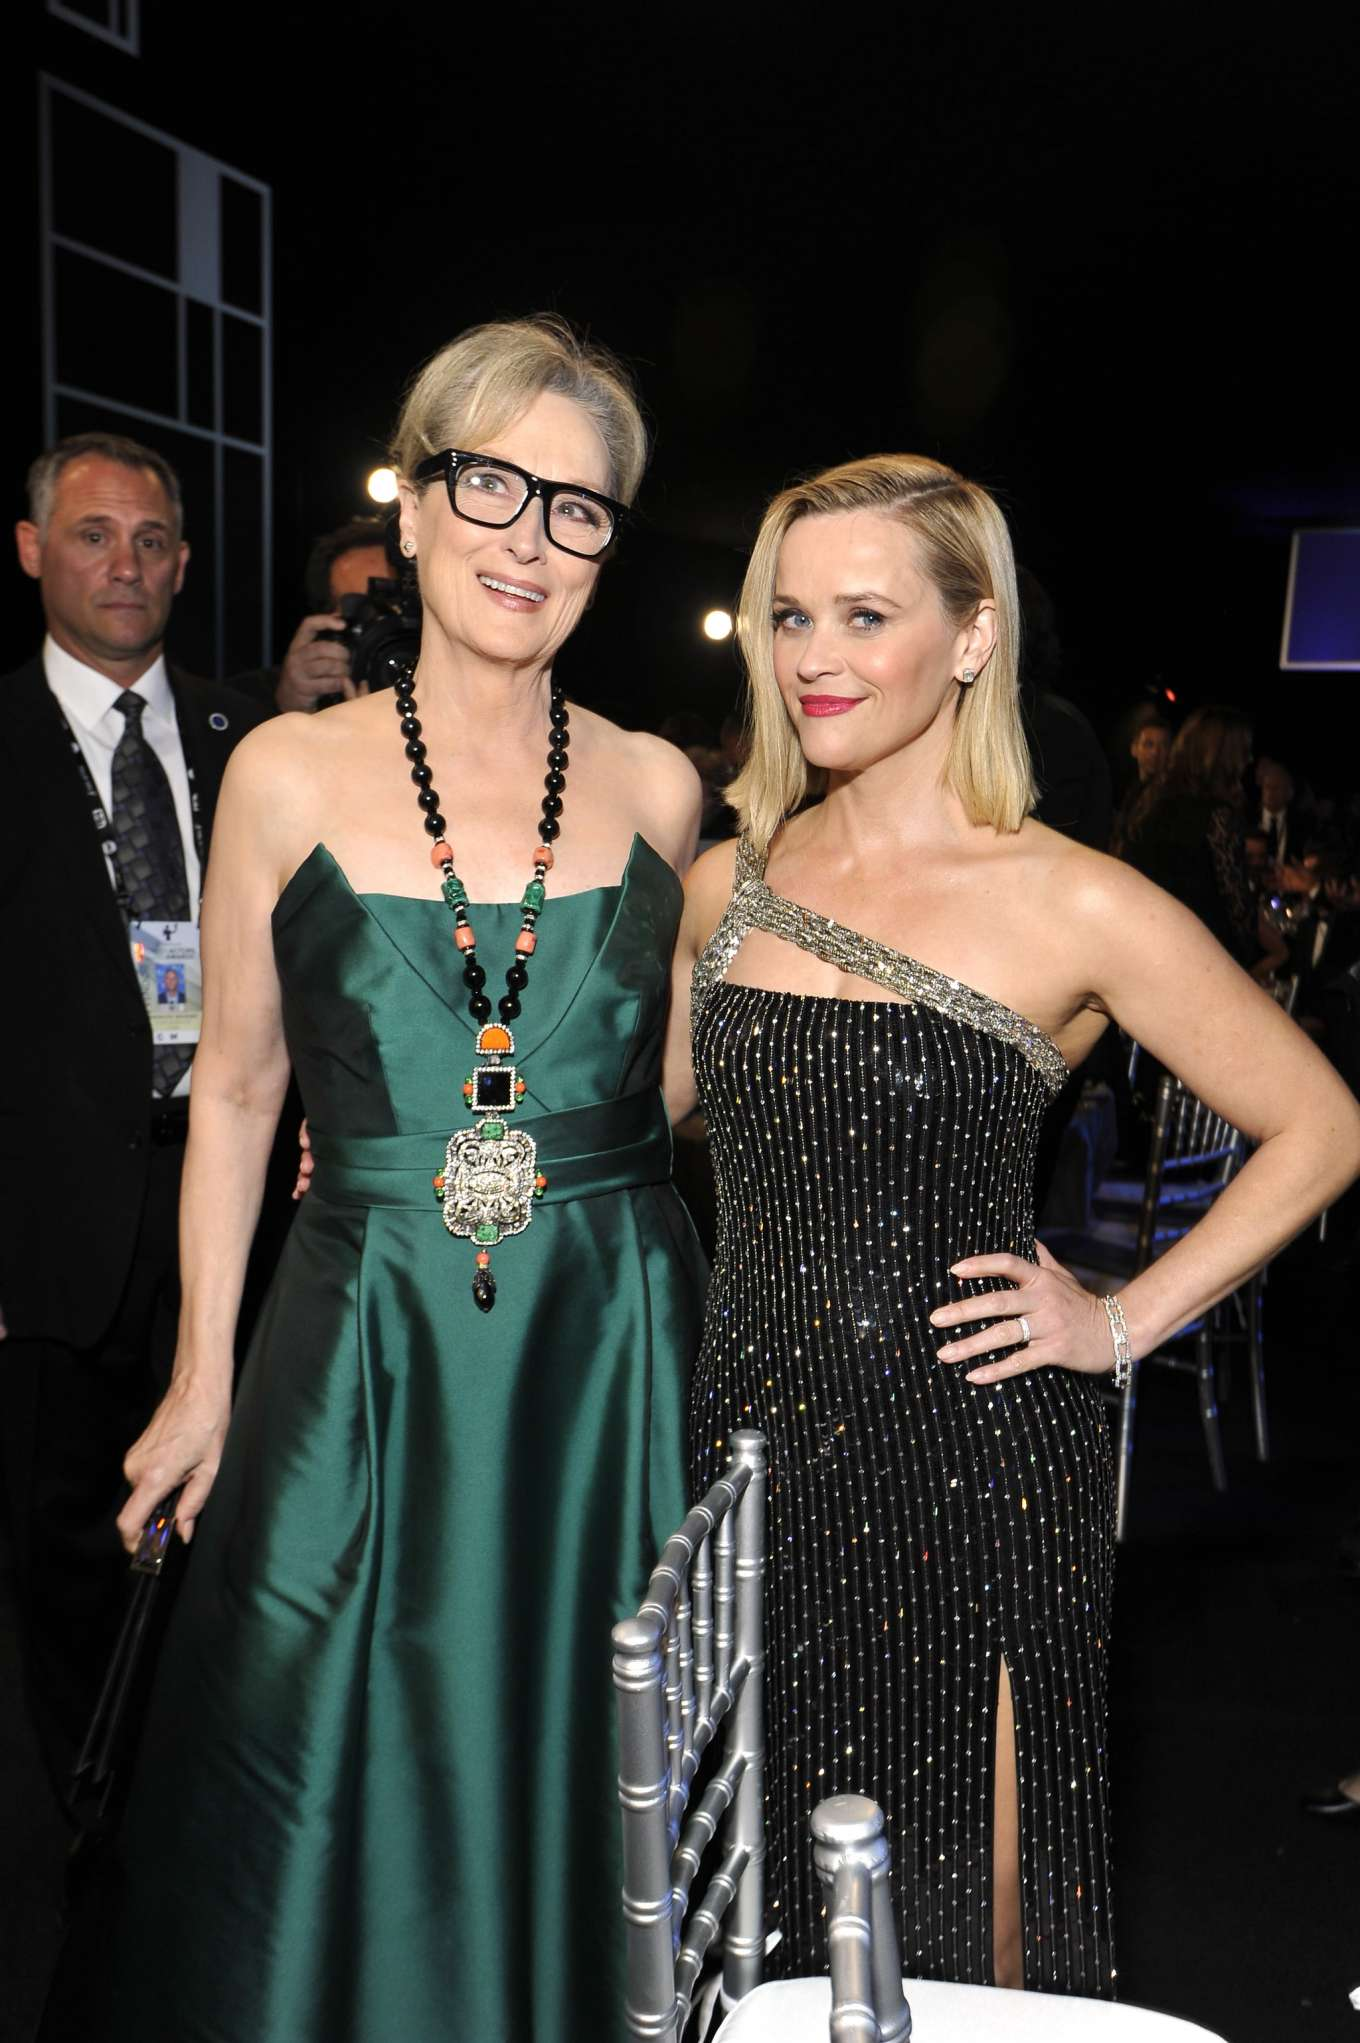 Reese Witherspoon 2020 : Reese Witherspoon – 2020 Screen Actors Guild Awards-07